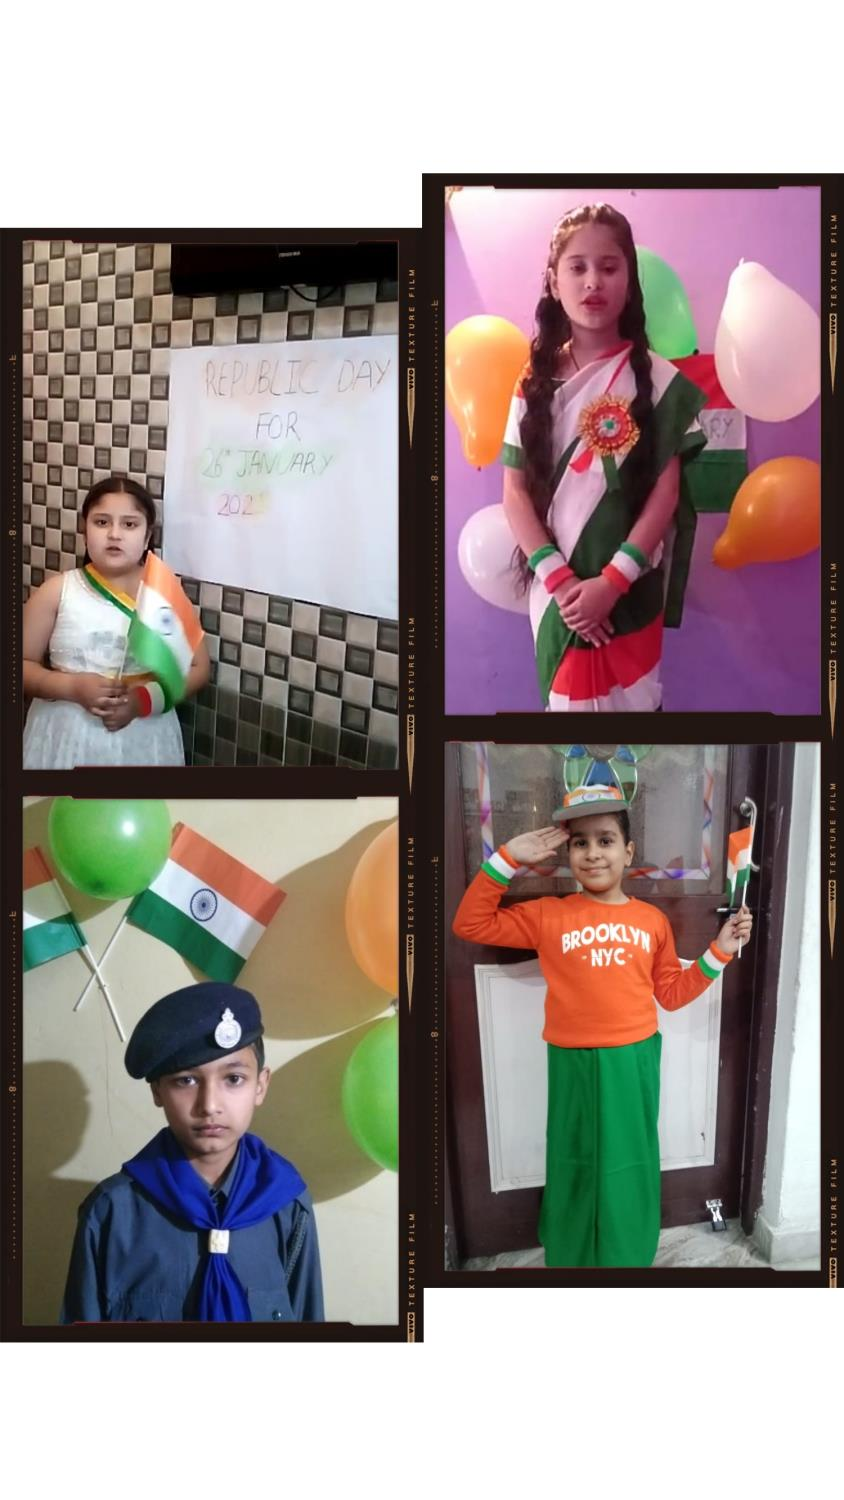 Online Music competition on the occasion of Republic Day for Class 3